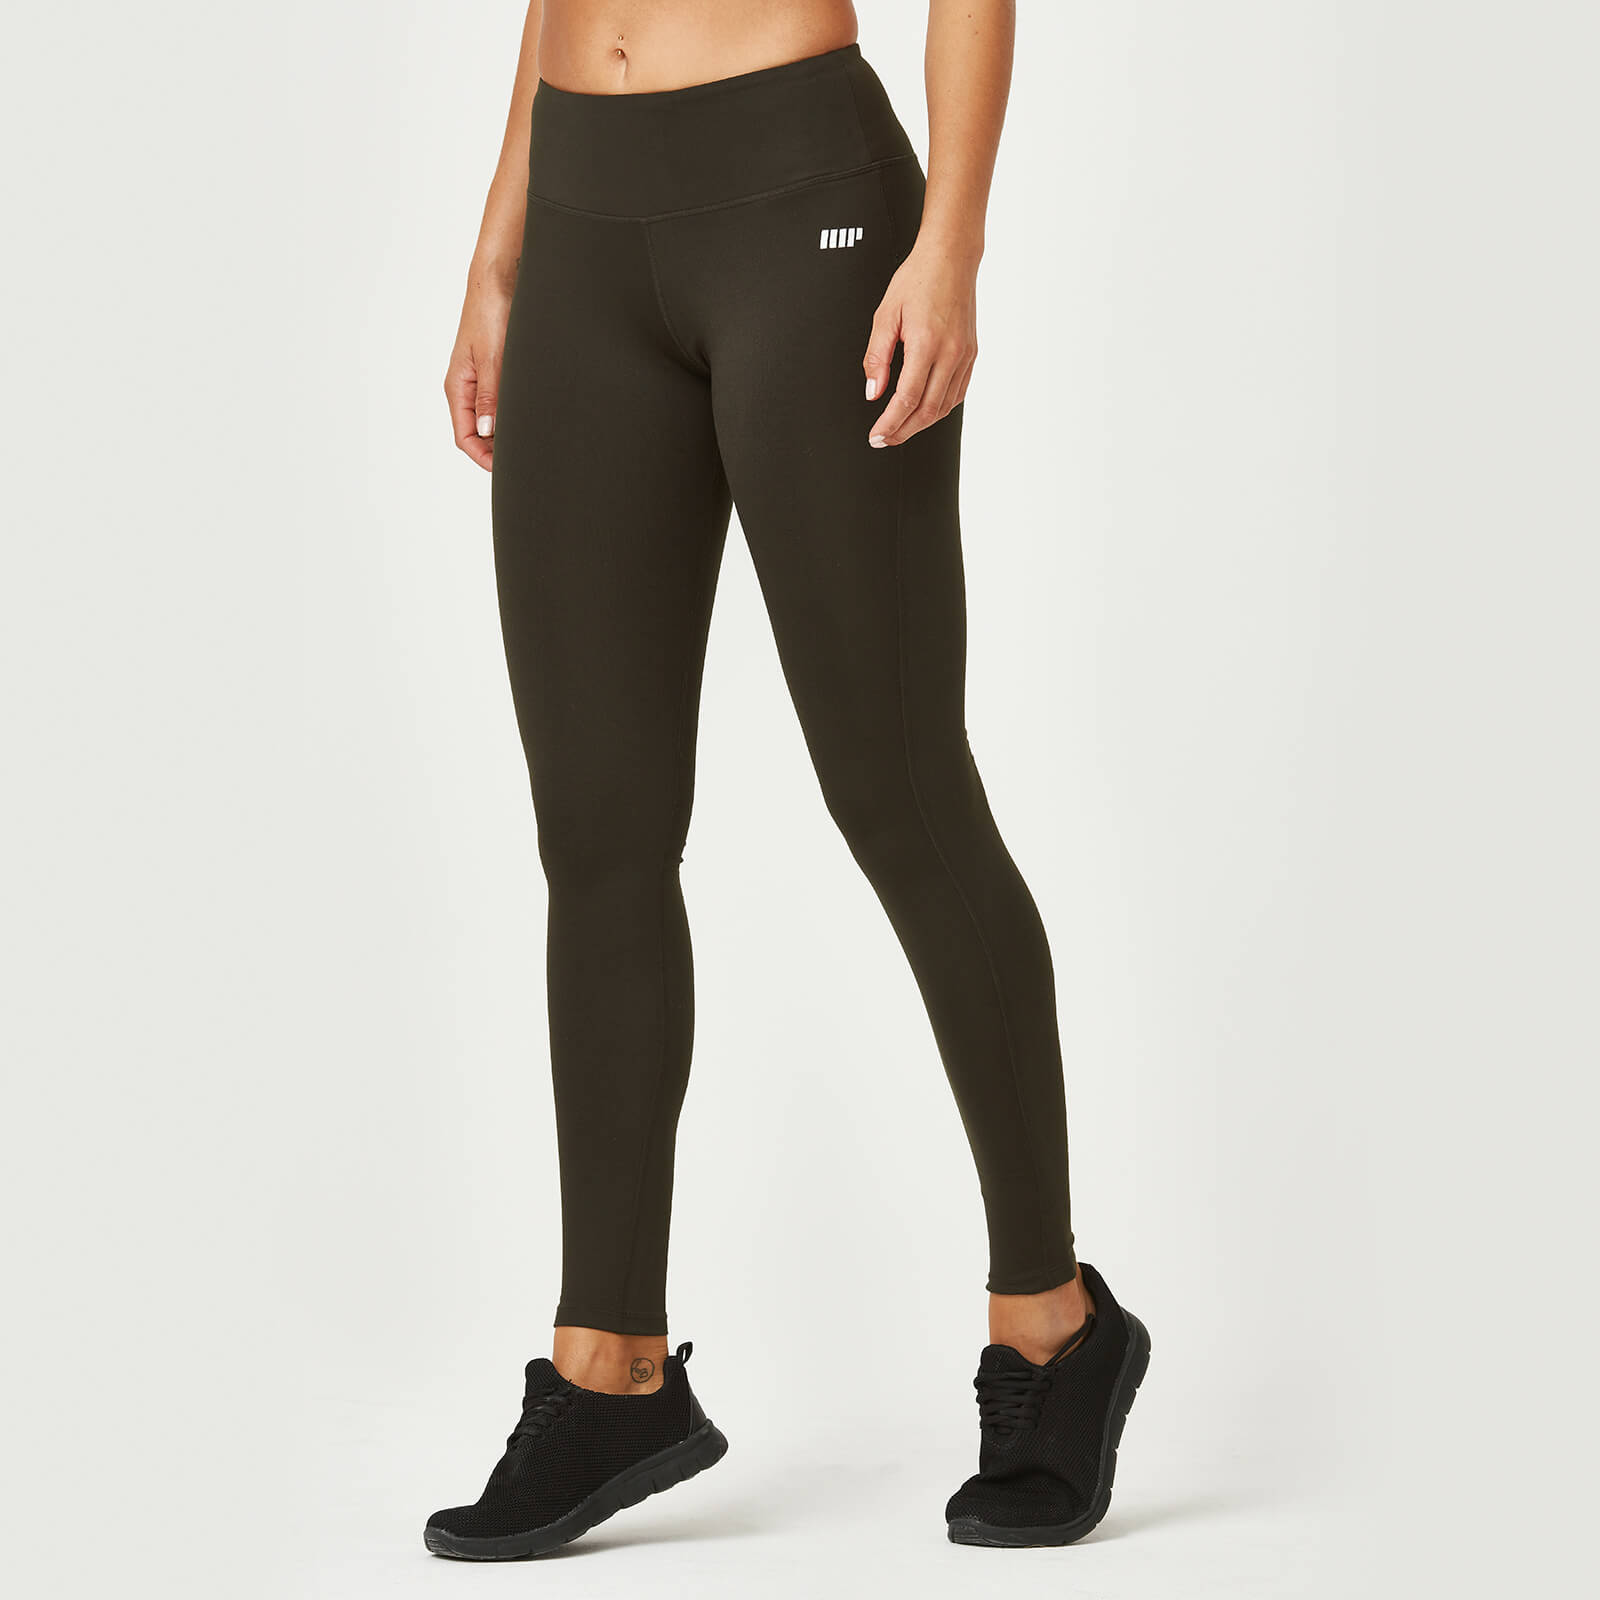 Myprotein Classic Heartbeat Full Length Leggings - Dark Khaki - XS